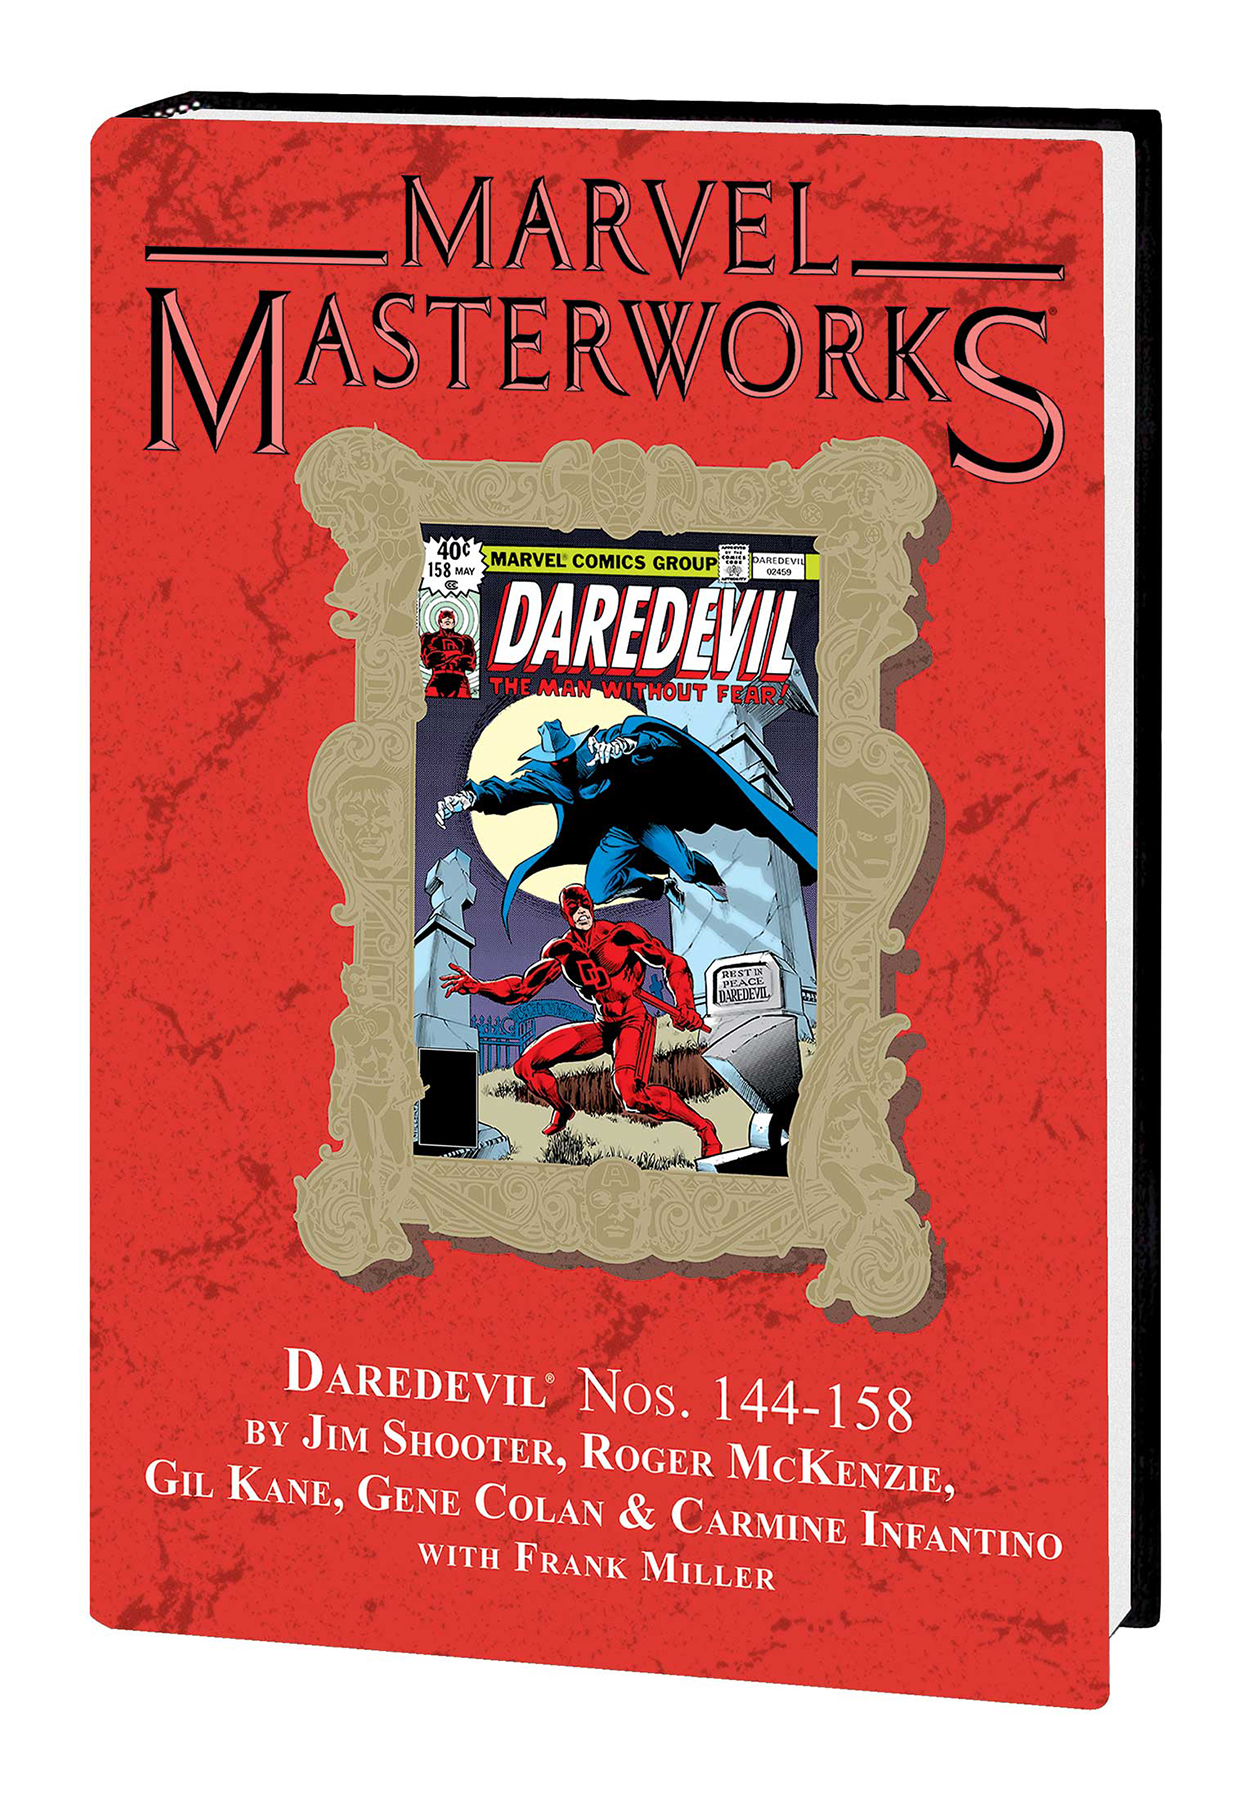 MMW DAREDEVIL HC VOL 14 DM VAR ED 285